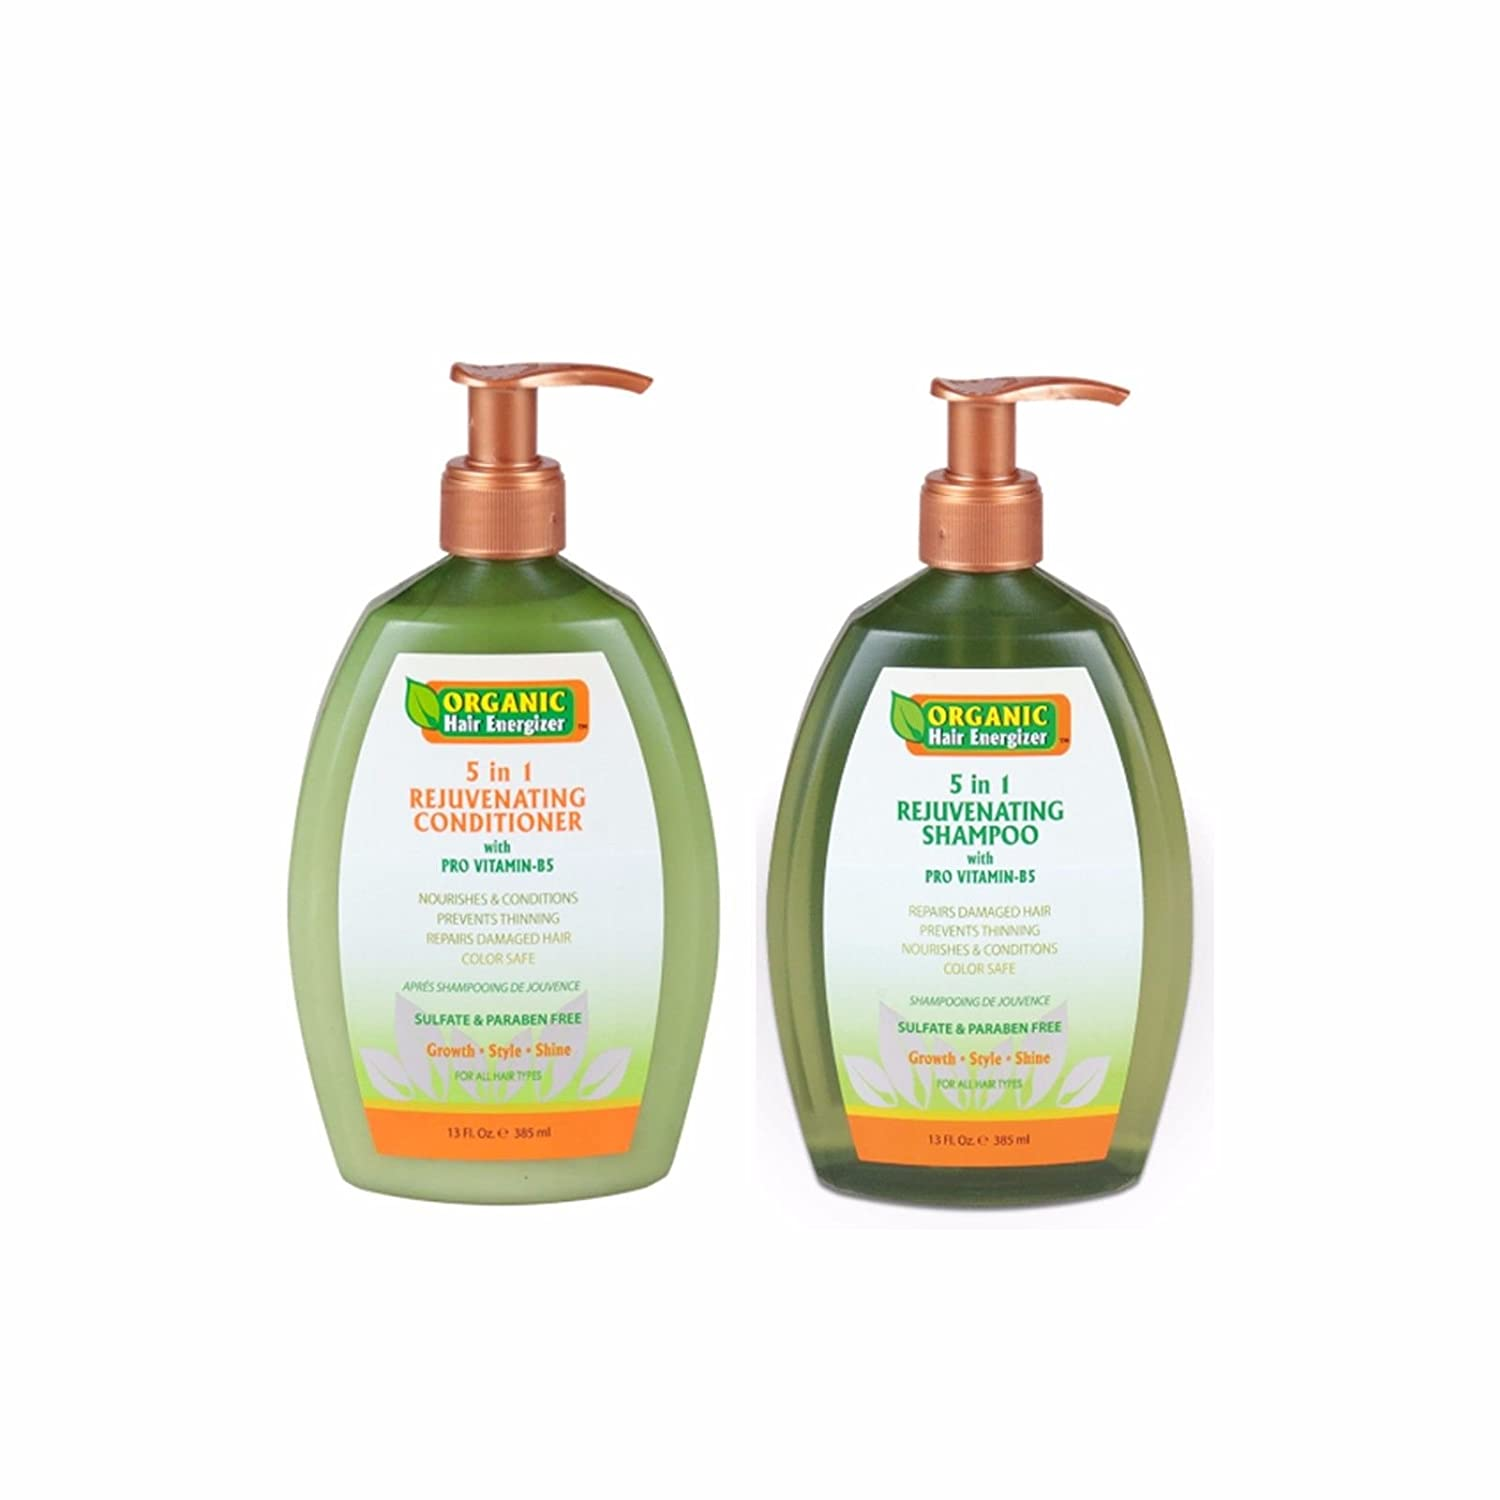 Hair Growth Shampoo & Conditioner - 2 in 1 Set - Stop Loss & Thinning at Root; Essential Oil Vitamin-B5 Sulfate-Free Treatment to Regrow for Male & Female